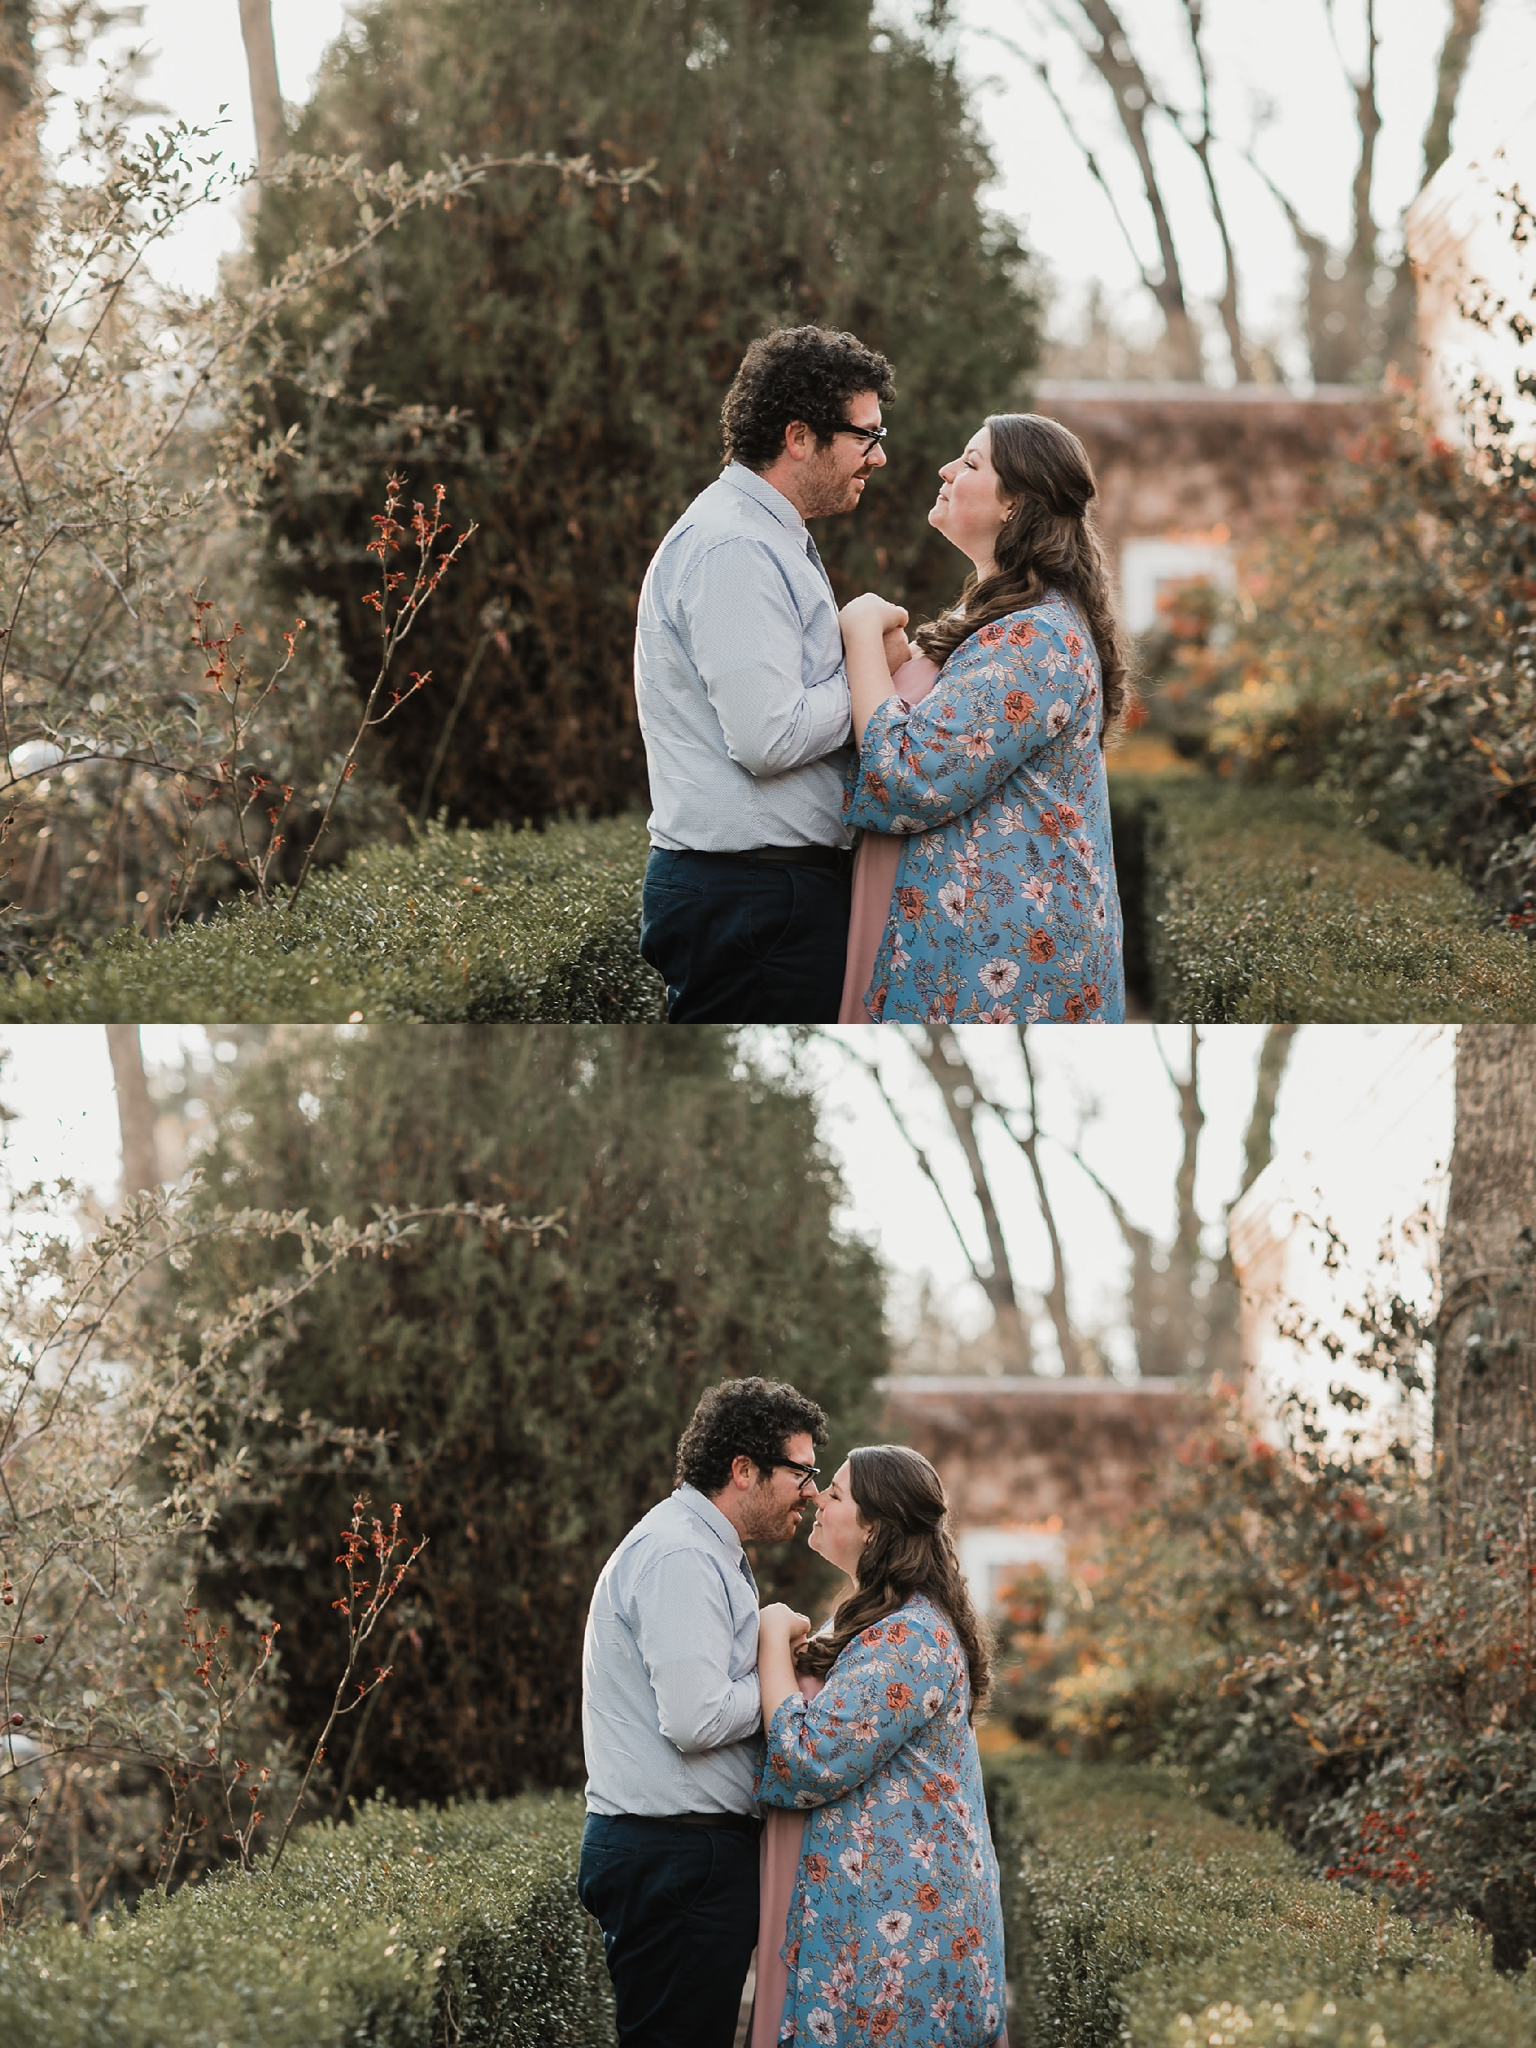 Alicia+lucia+photography+-+albuquerque+wedding+photographer+-+santa+fe+wedding+photography+-+new+mexico+wedding+photographer+-+new+mexico+engagement+-+los+poblanos+engagement+-+spring+engagement_0019.jpg